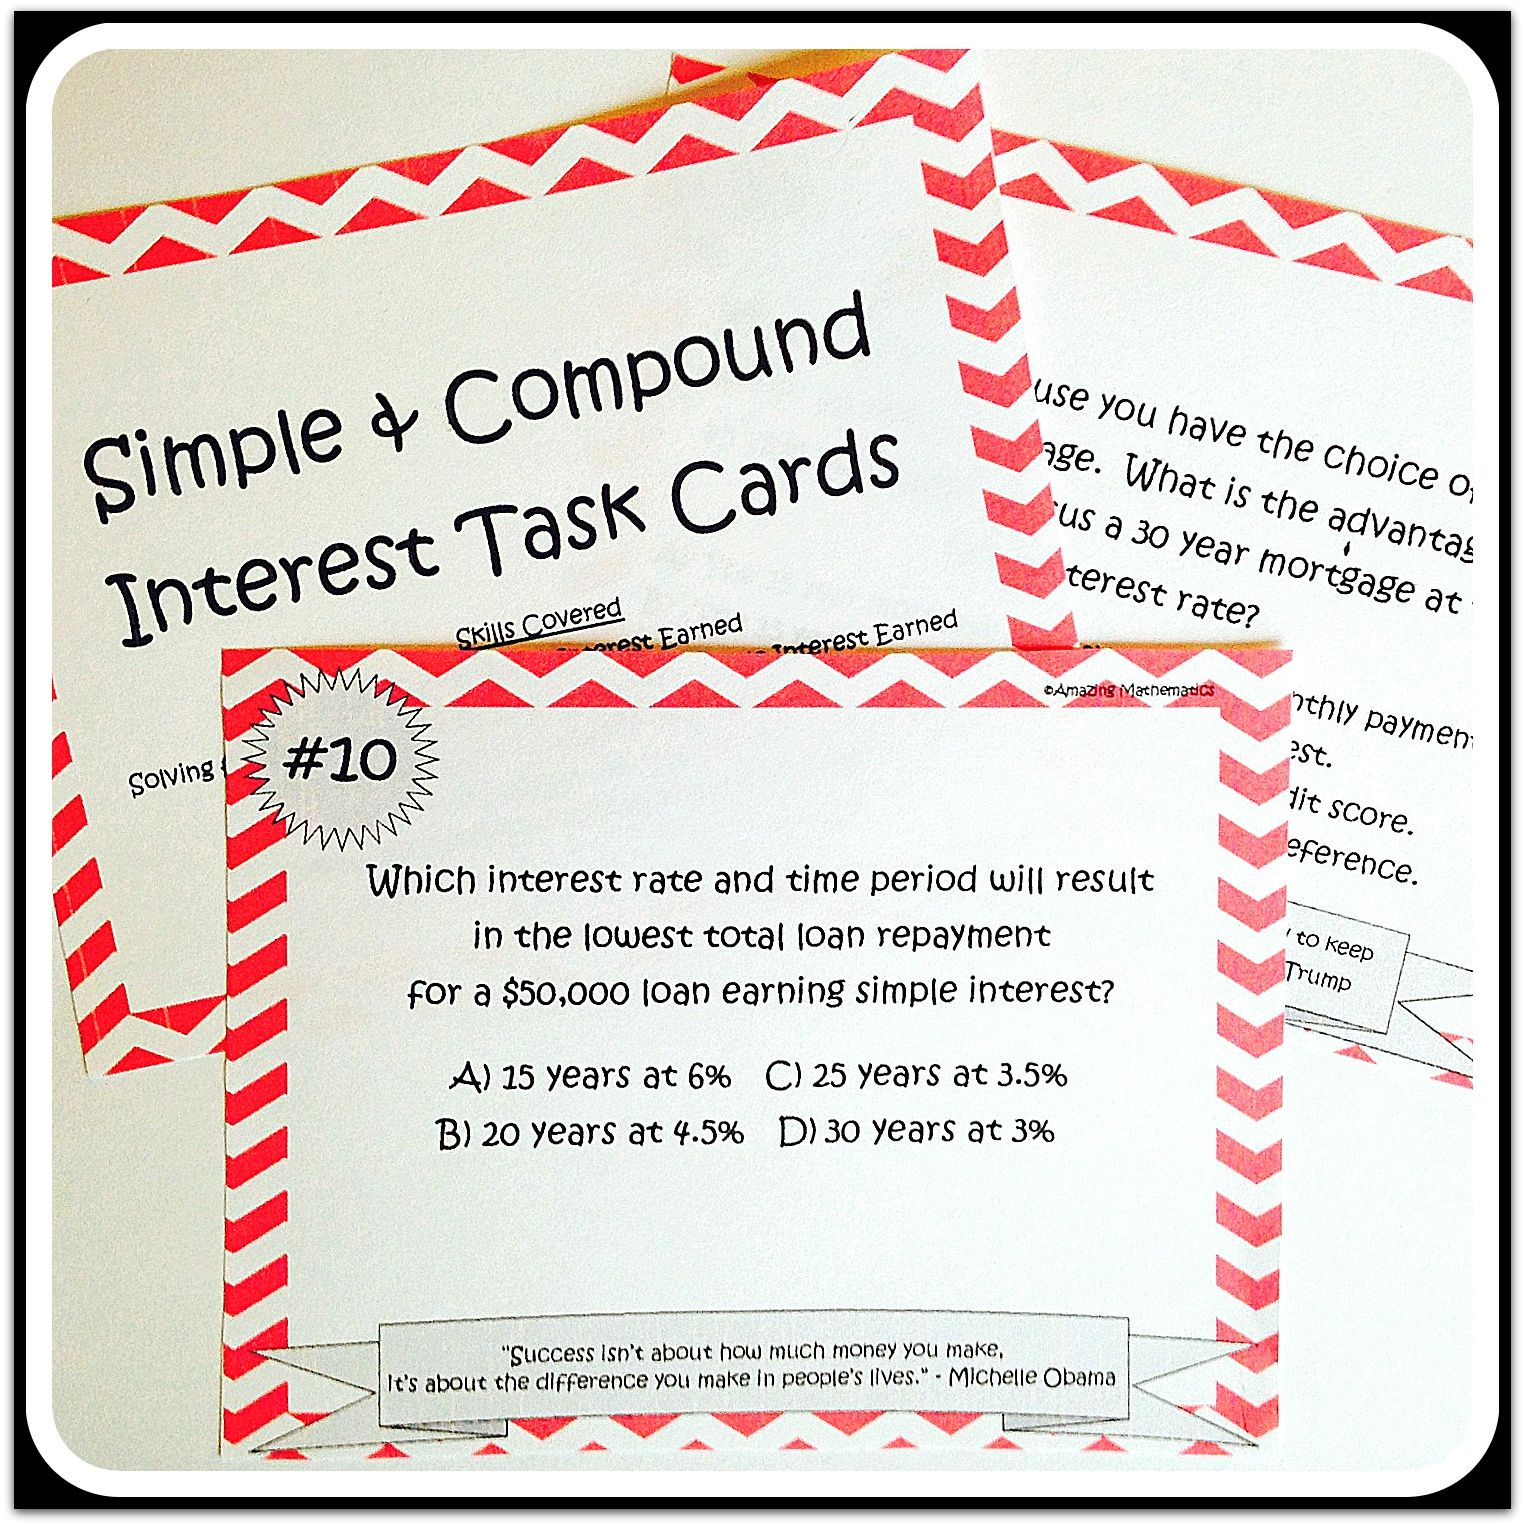 medium resolution of Simple \u0026 Compound Interest Task Cards   Financial literacy worksheets